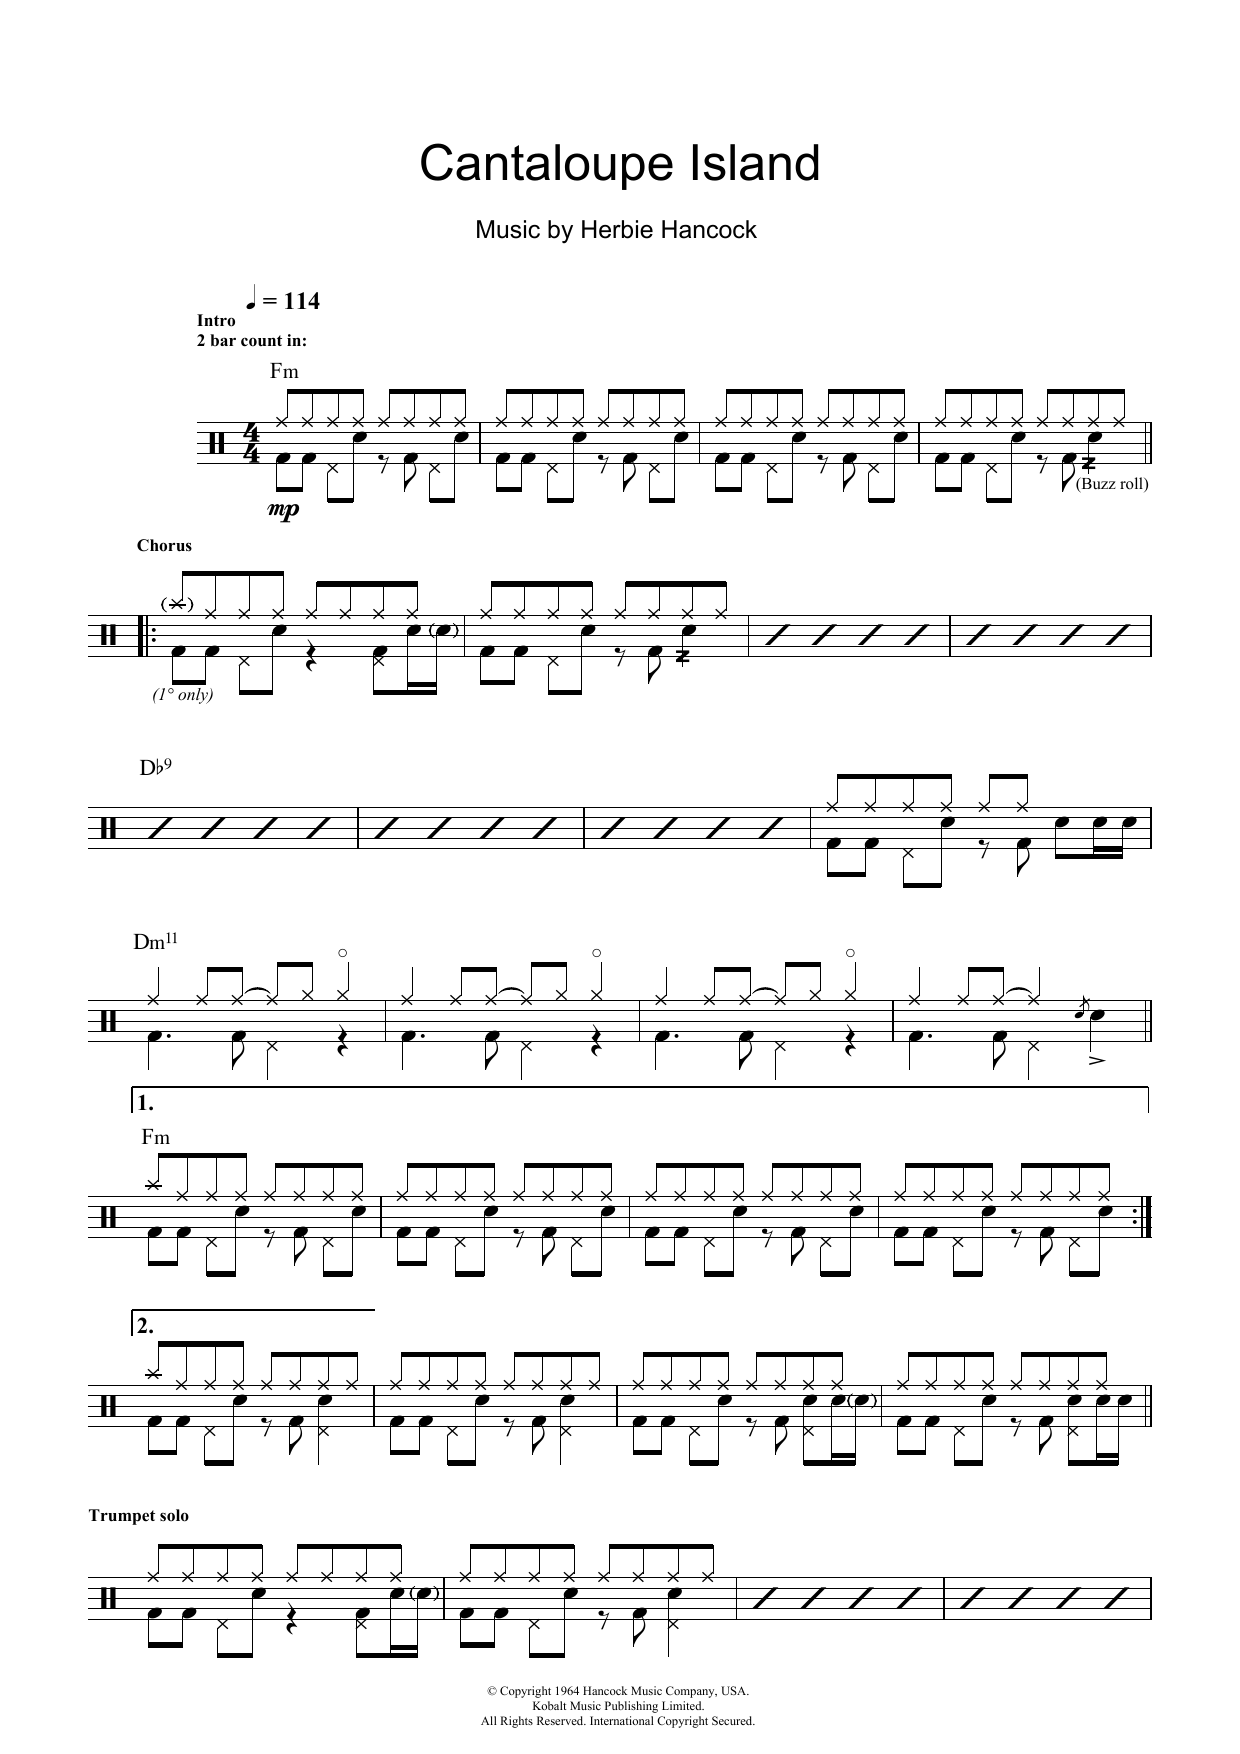 Cantaloupe Island Sheet Music Herbie Hancock Drums Cantaloupe music is a record label founded in march 2001 by the three founders of new york's bang on a can festival: cantaloupe island sheet music herbie hancock drums